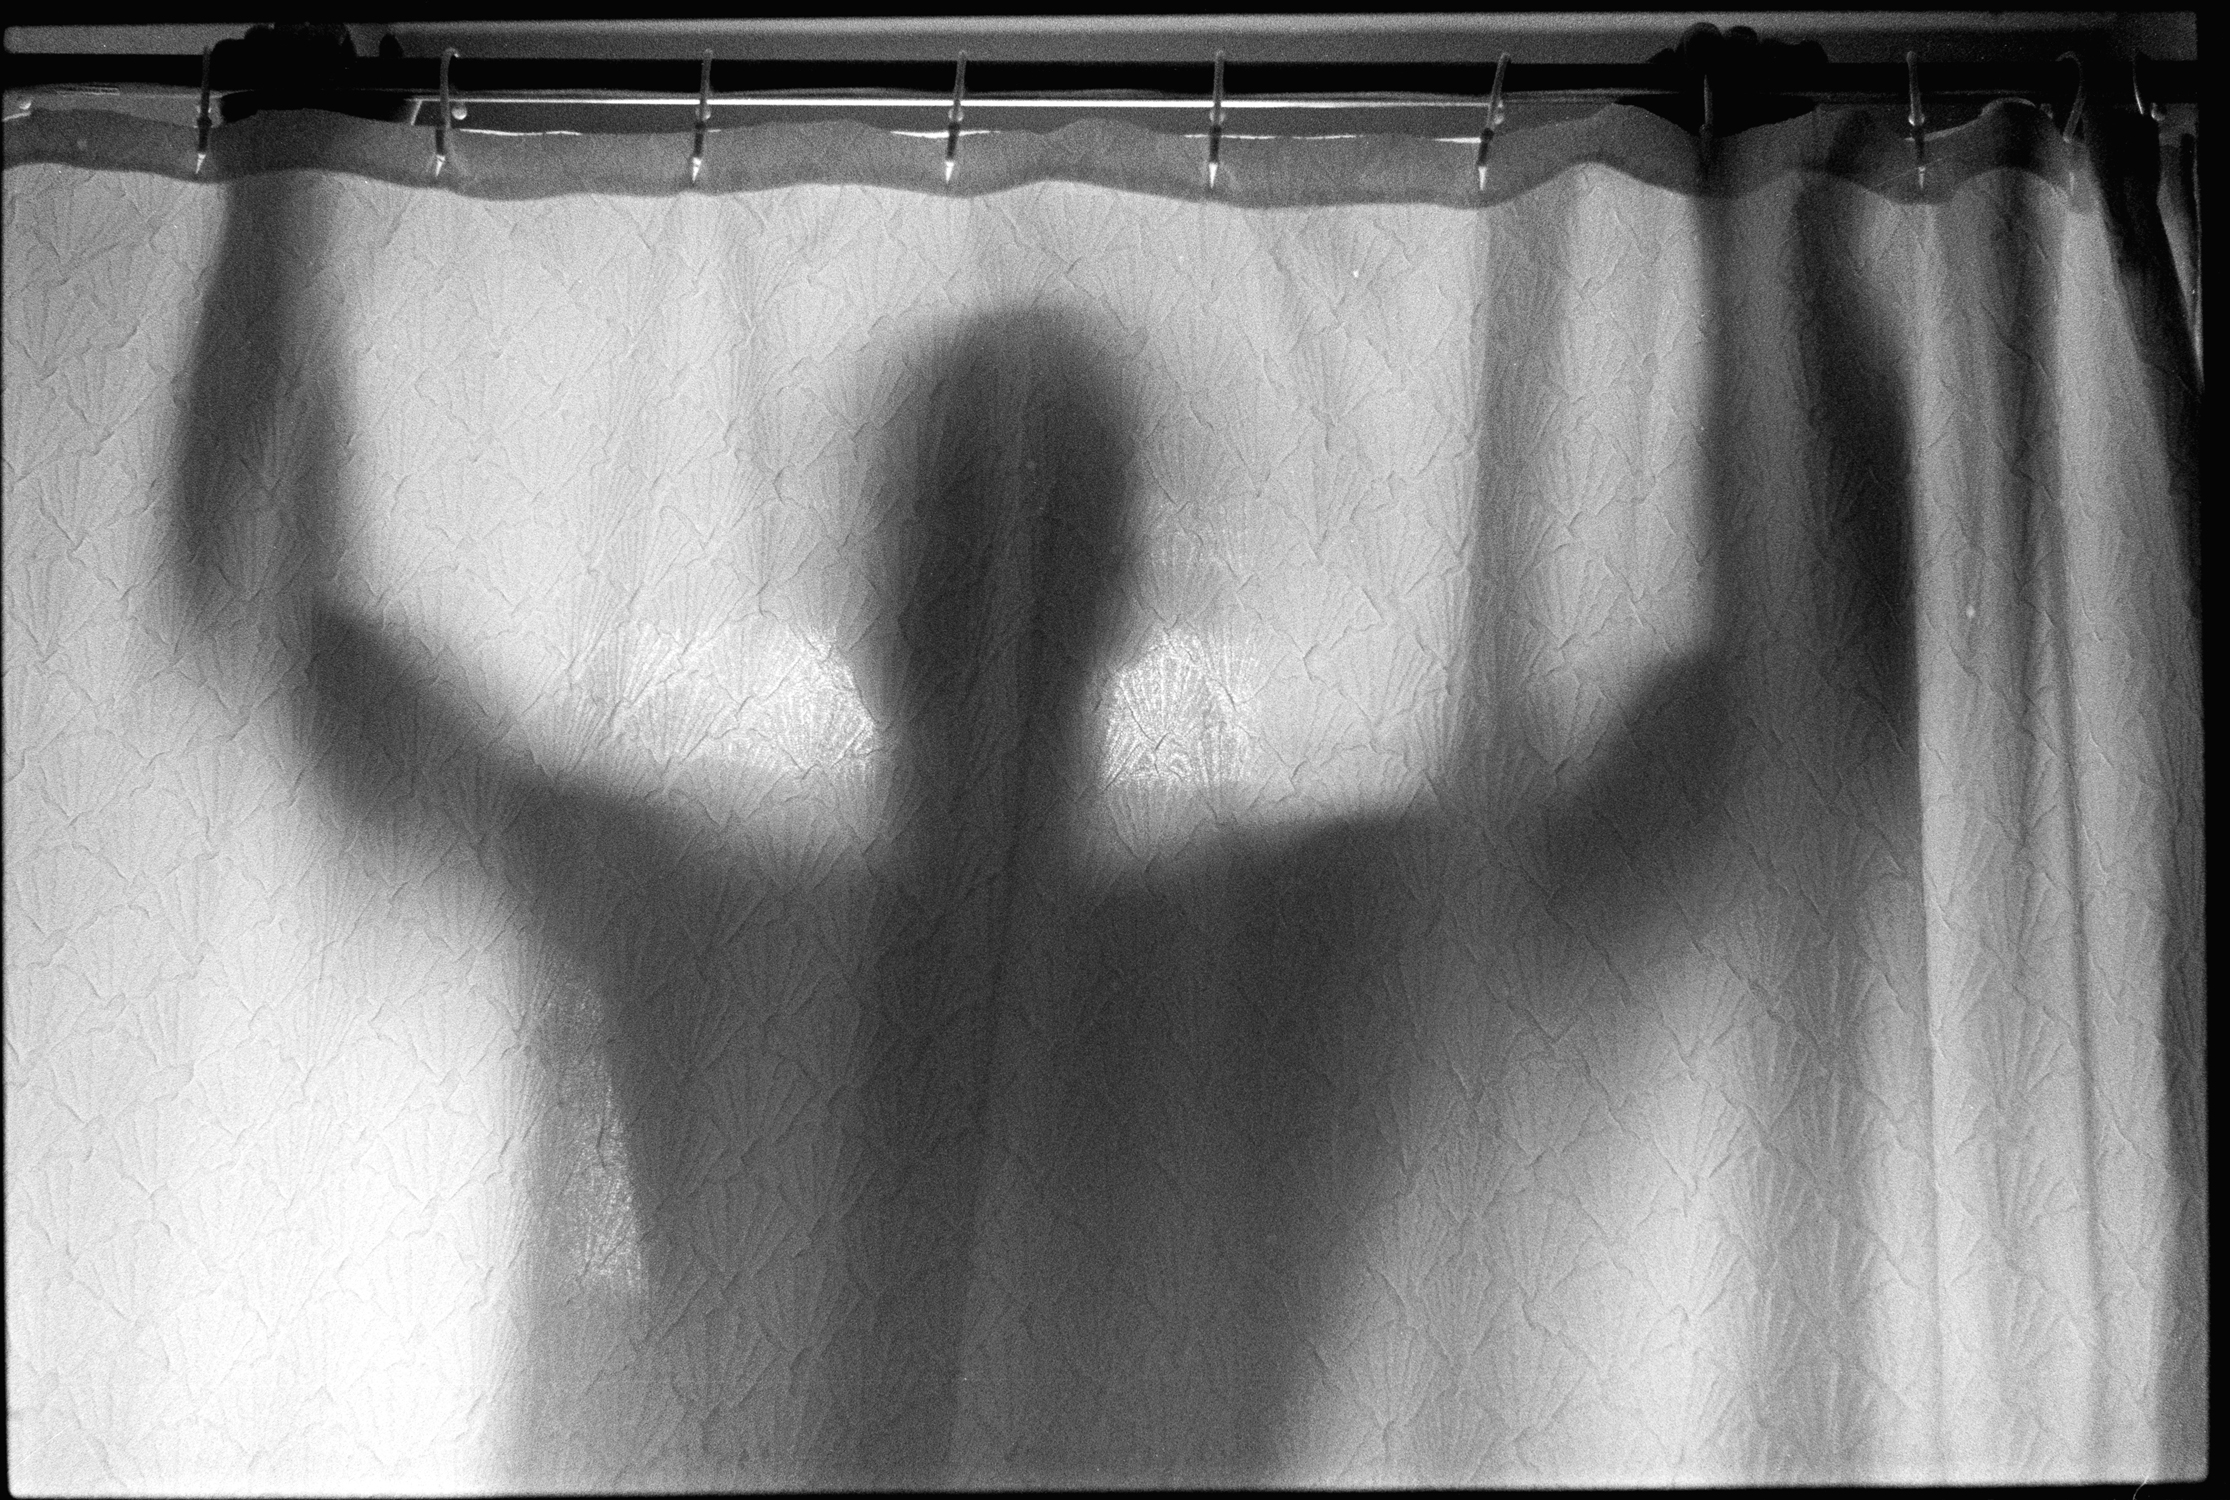 Shadowy figure behind shower curtain (Pic: Starla Little)